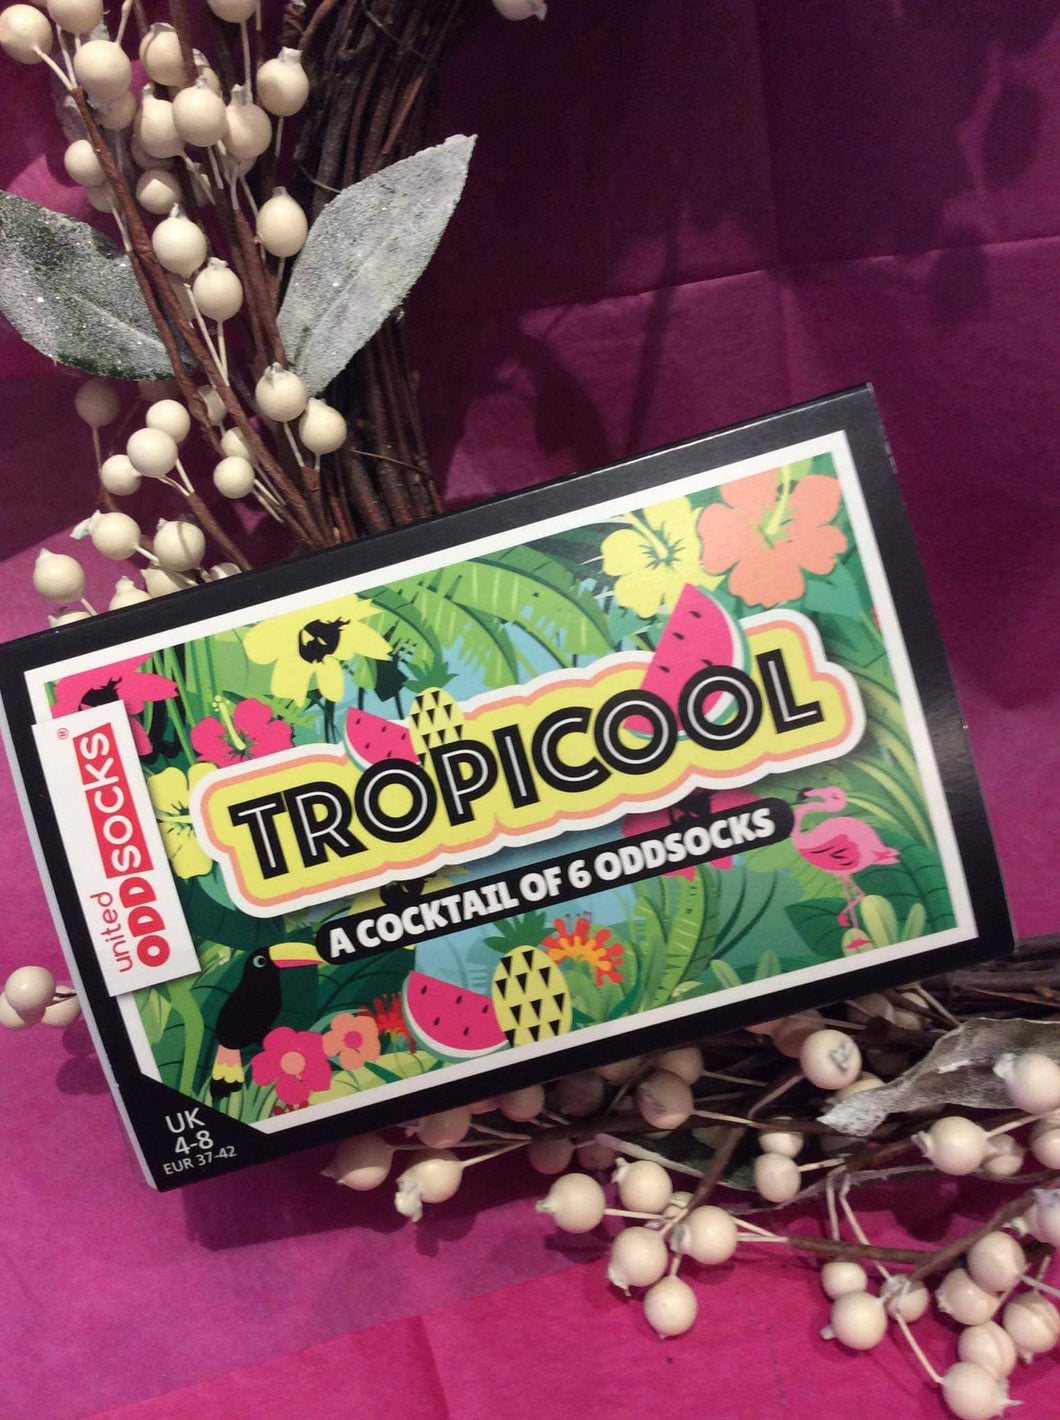 Tropicool 6 Odd Boxed Socks Ladies - Sizes 4-8